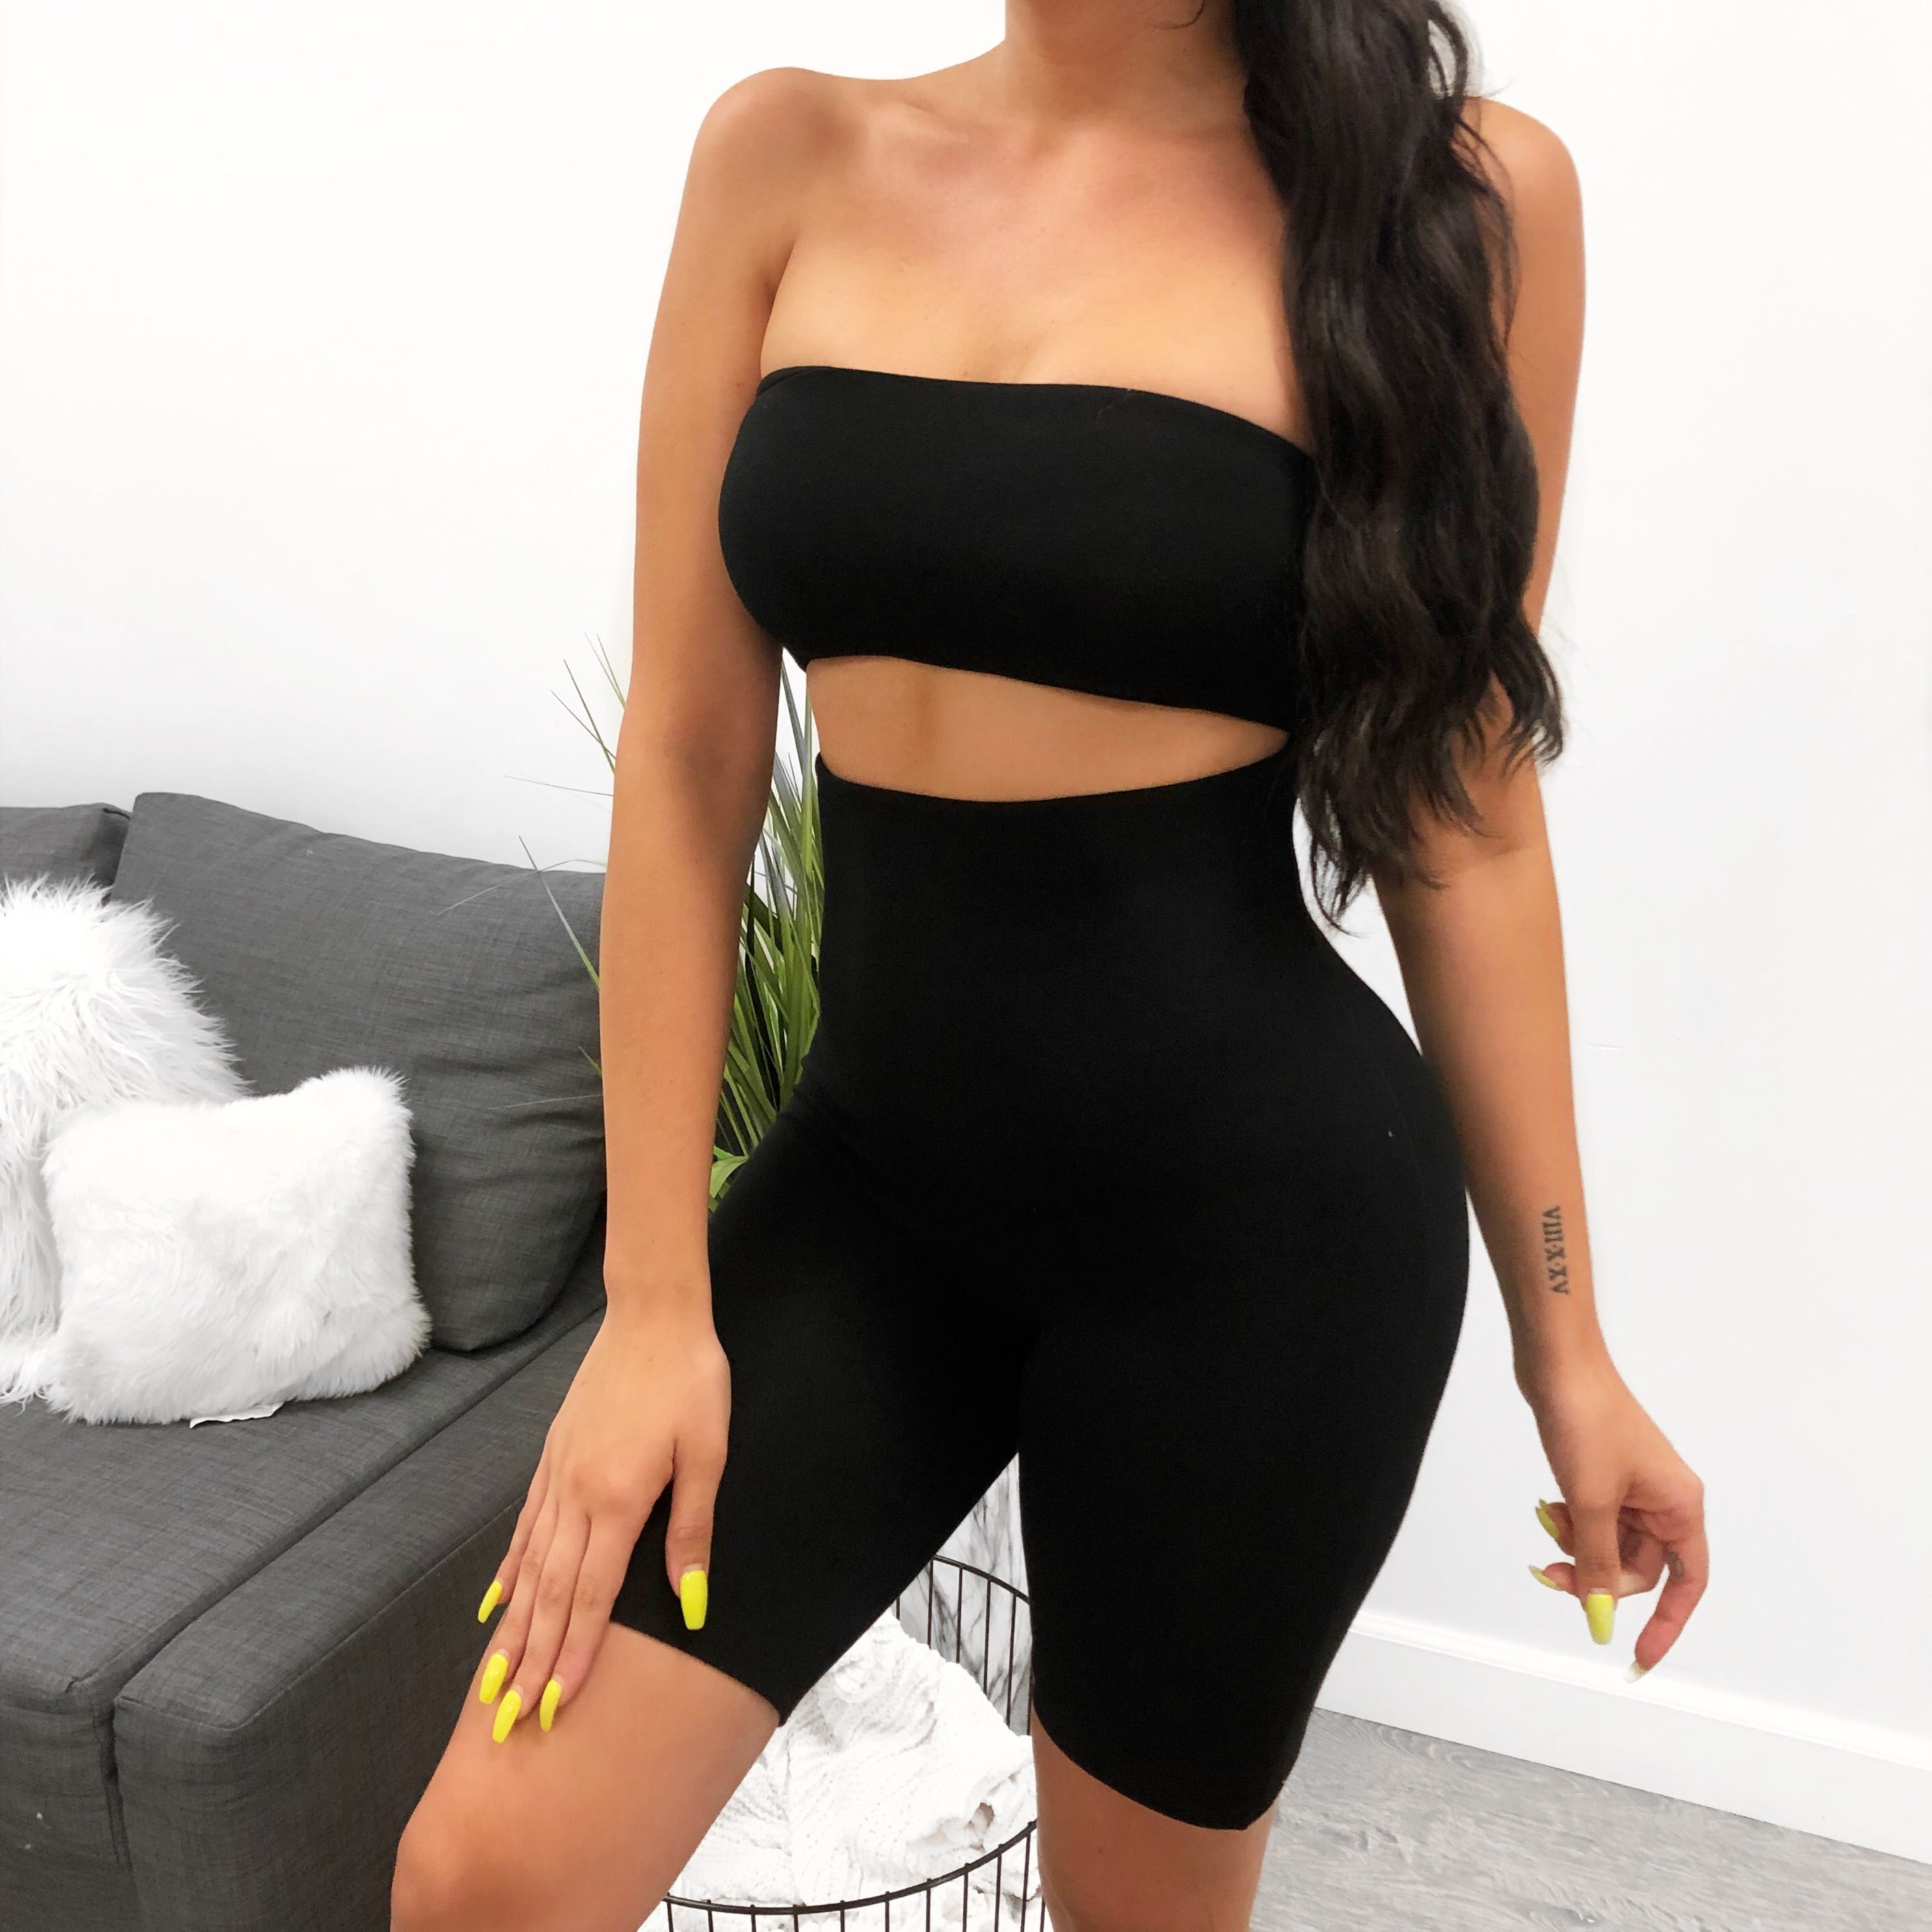 black jumpsuit, the top half is a sleeveless tube top, bottom half is biker shorts, mid thigh length